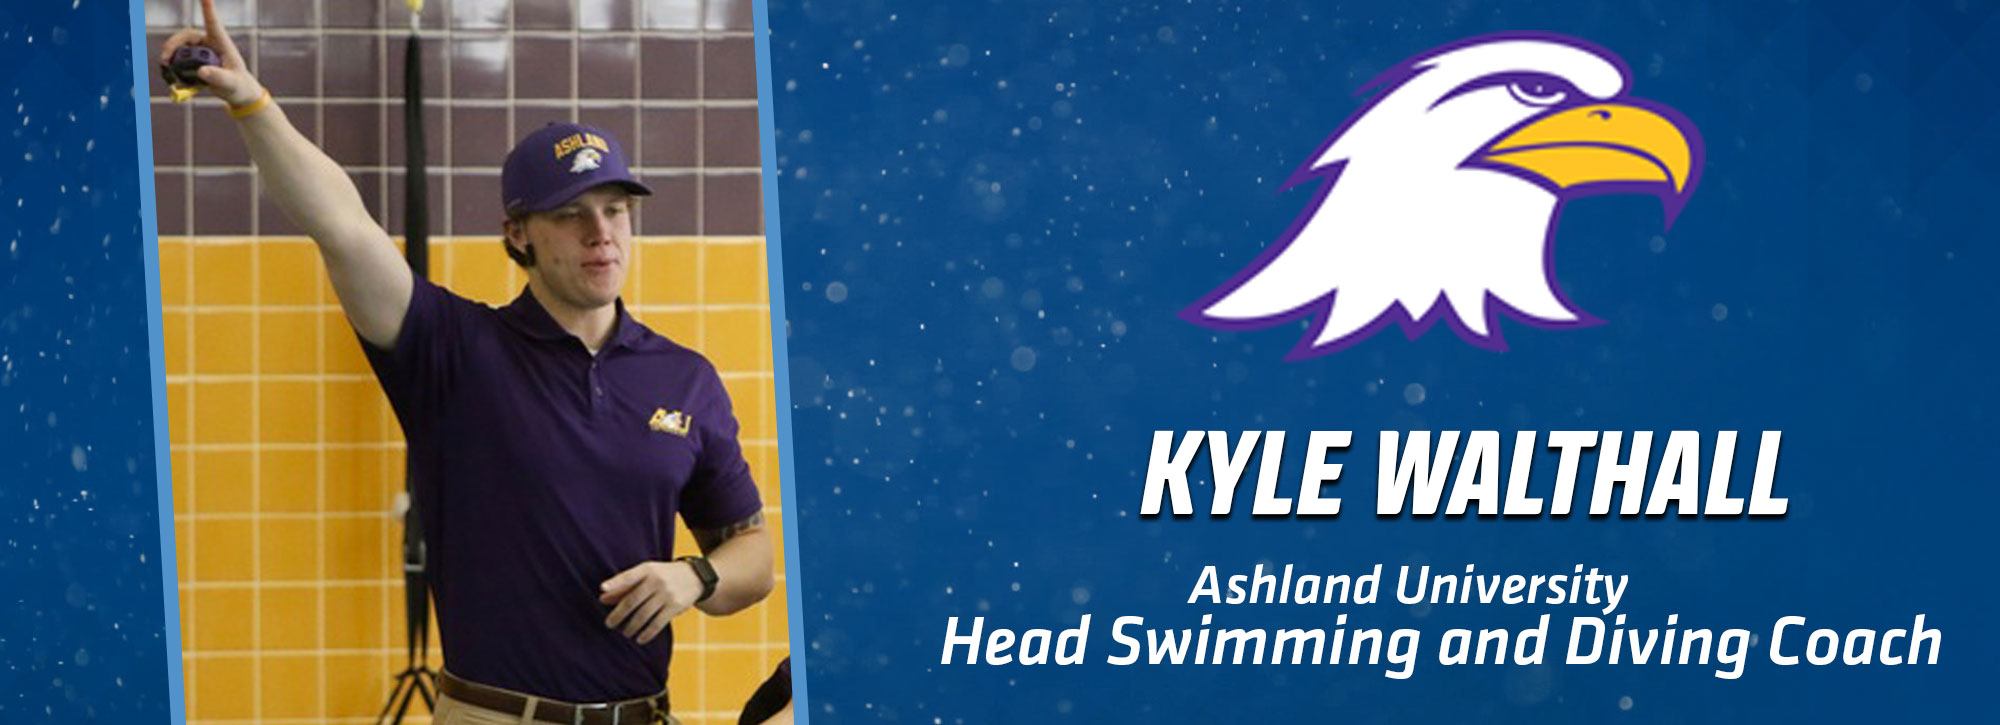 Ashland Promotes Walthall To Head Swimming & Diving Coach